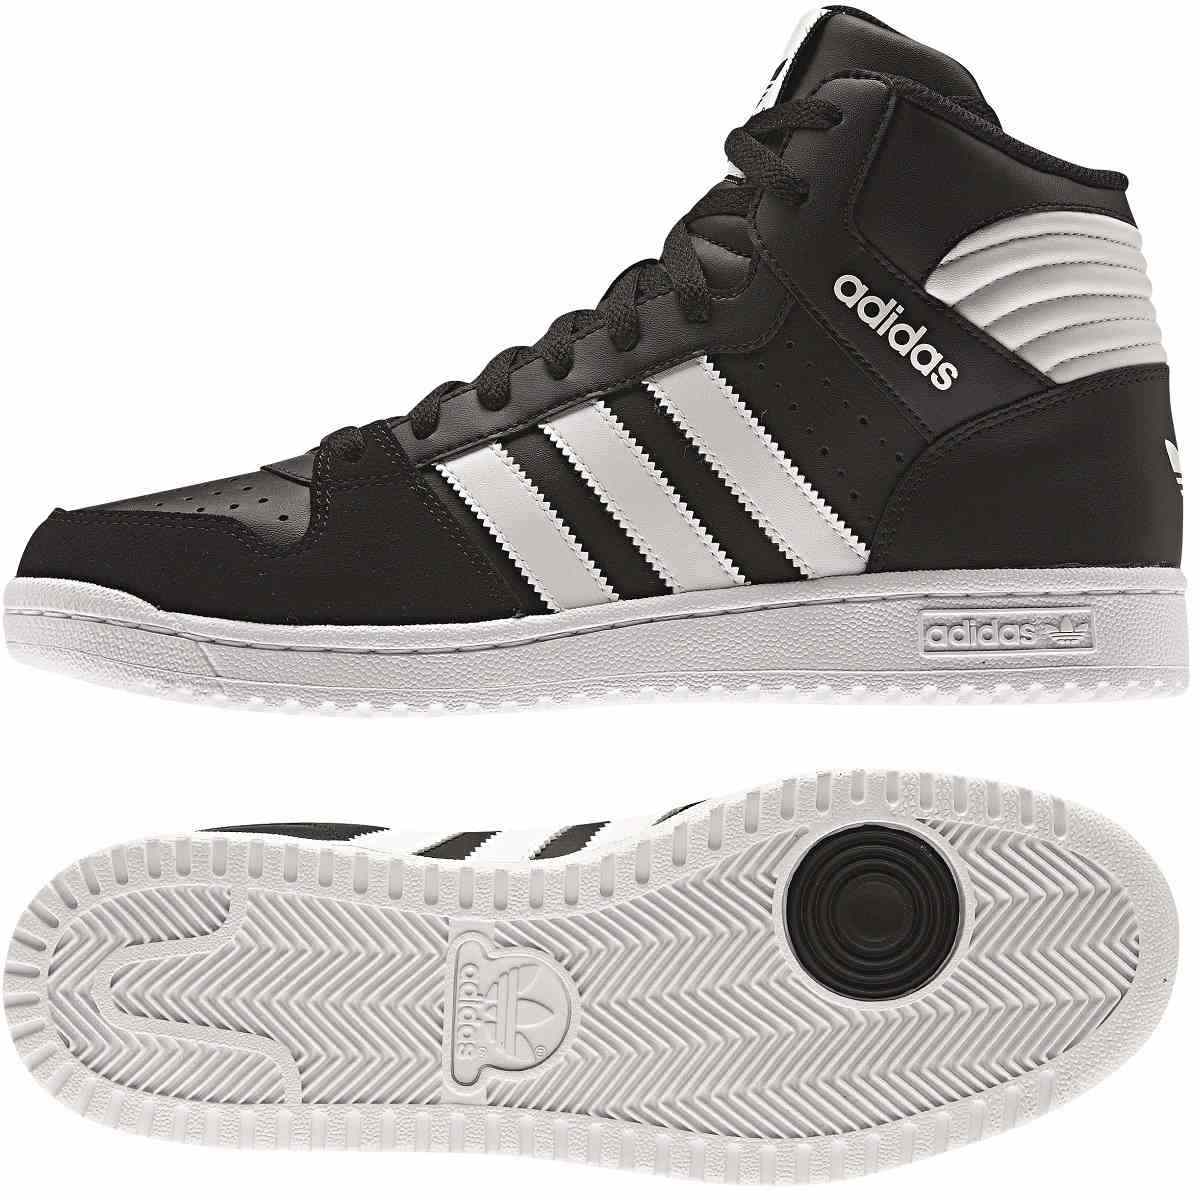 cscbyr9y buy adidas high top sneaker herren. Black Bedroom Furniture Sets. Home Design Ideas